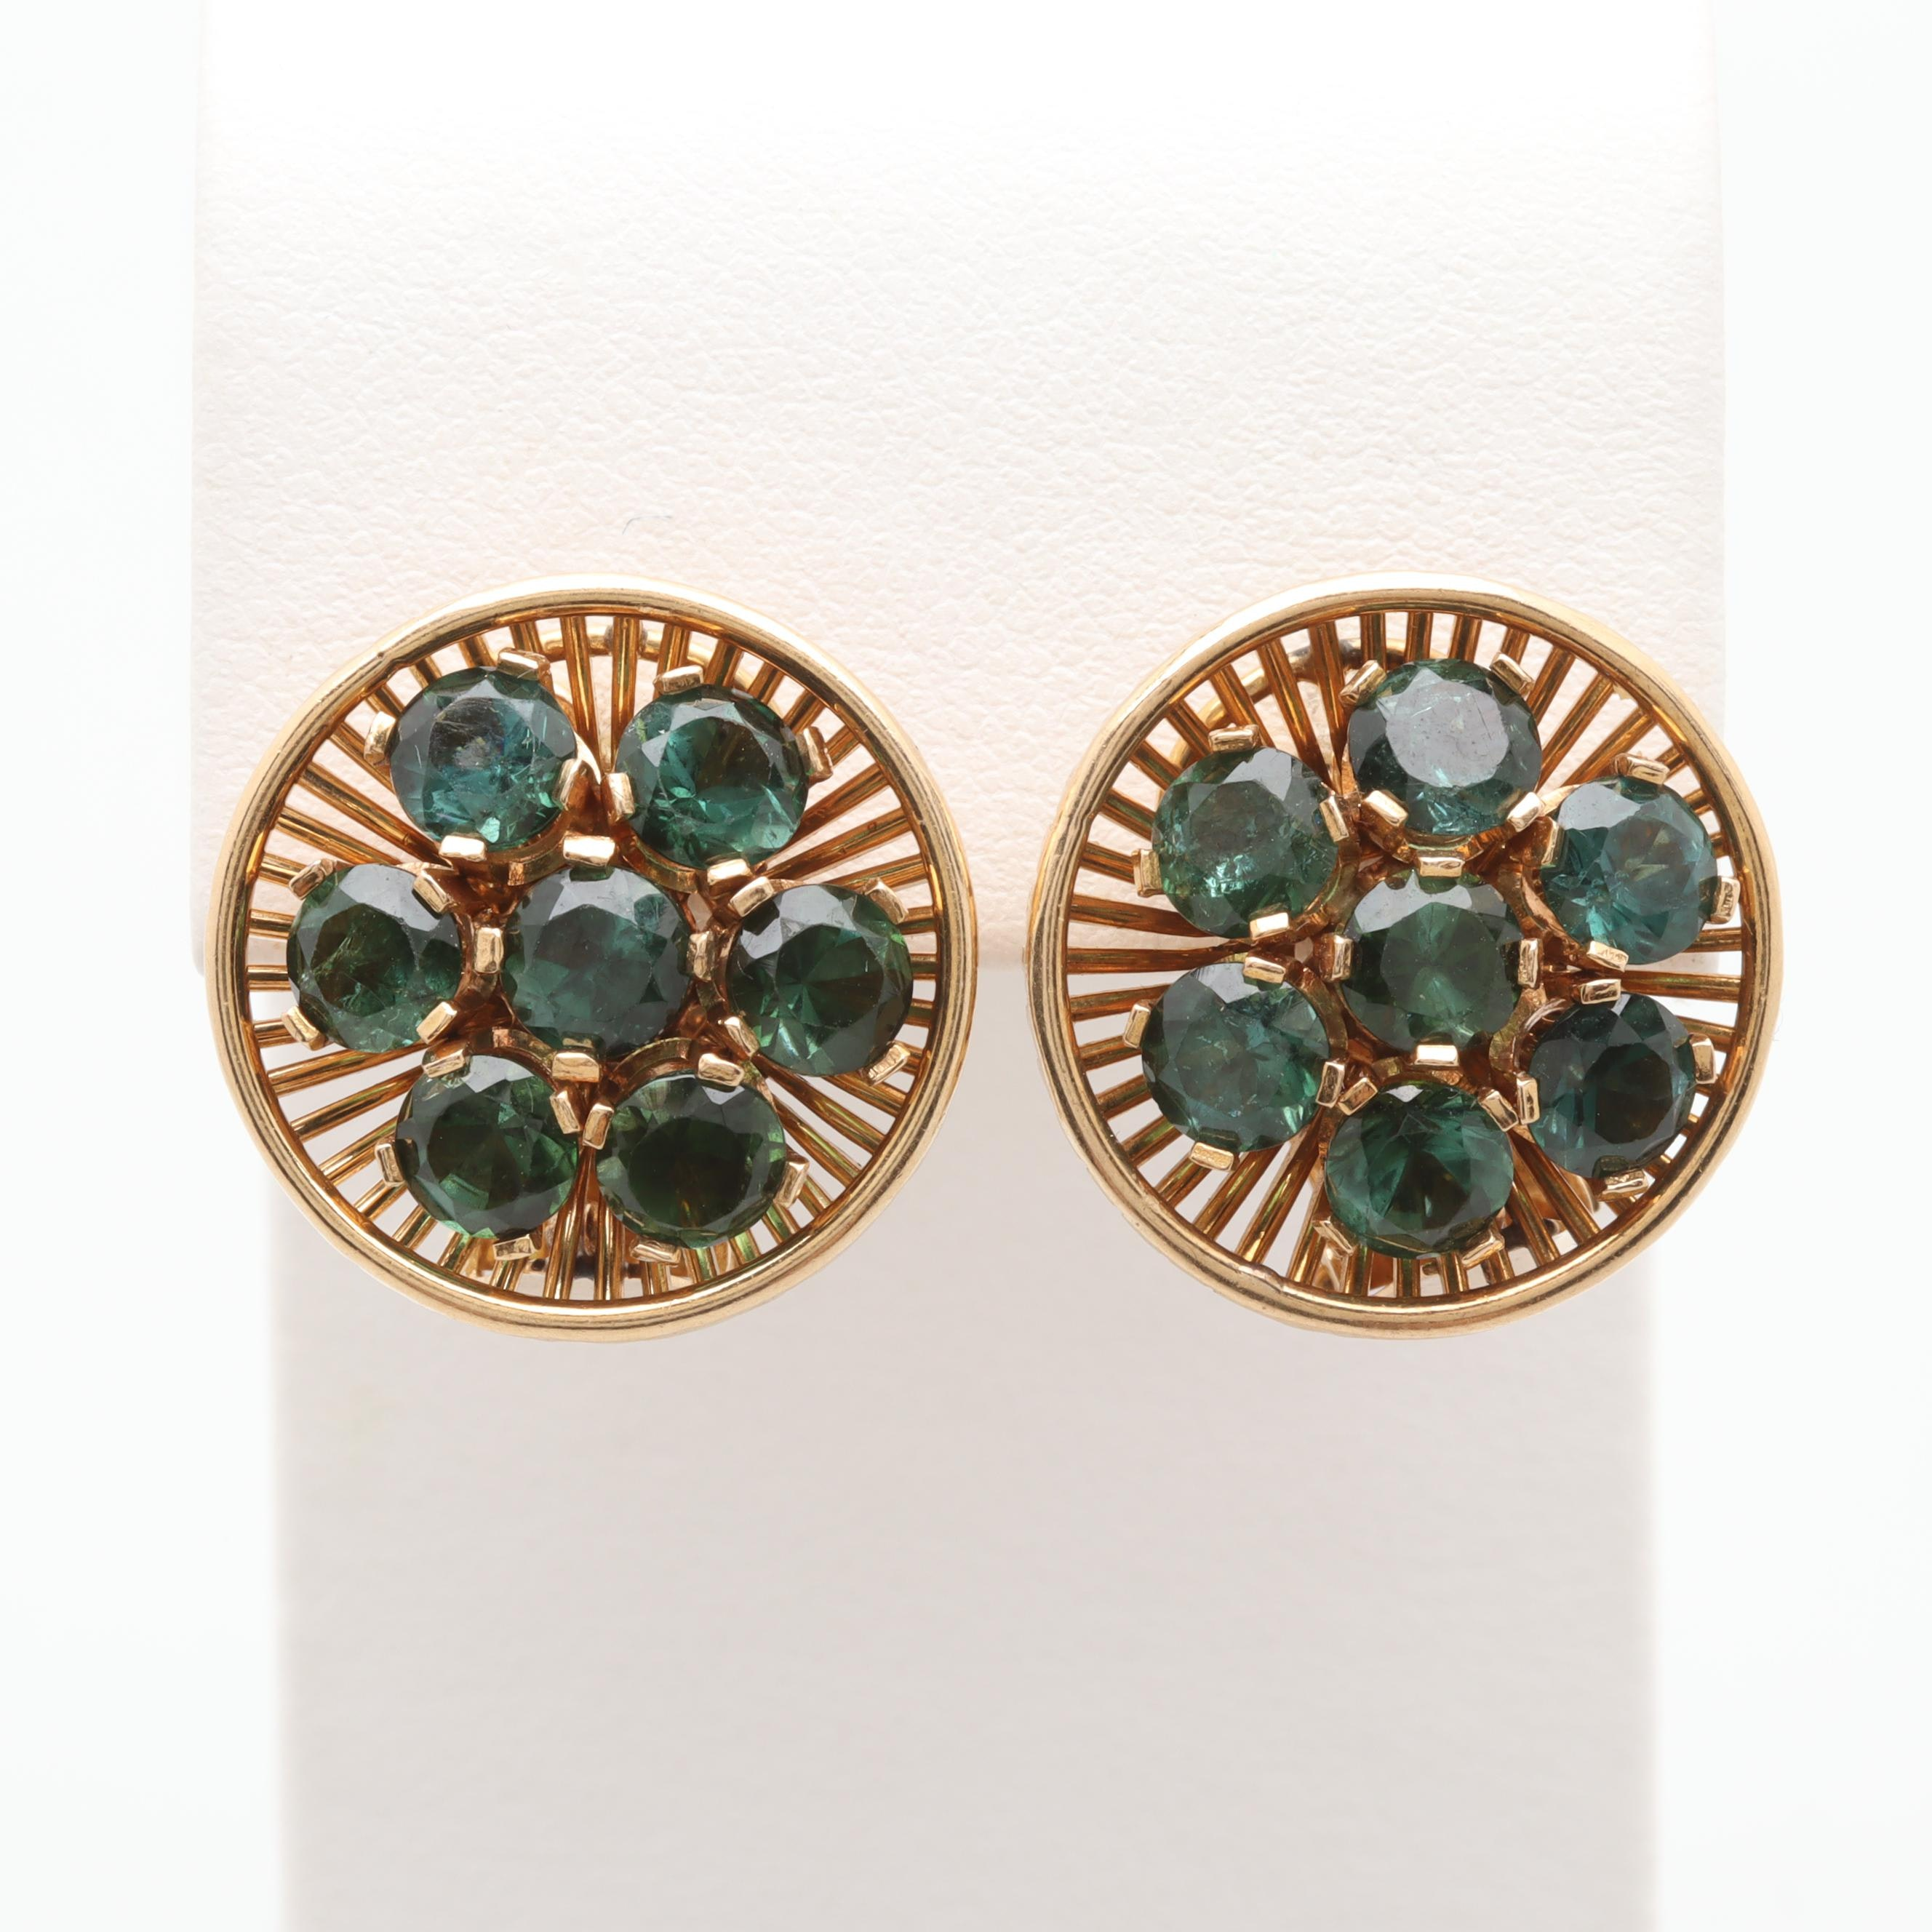 Vintage 18K Yellow Gold Green Tourmaline Floral Motif Earrings